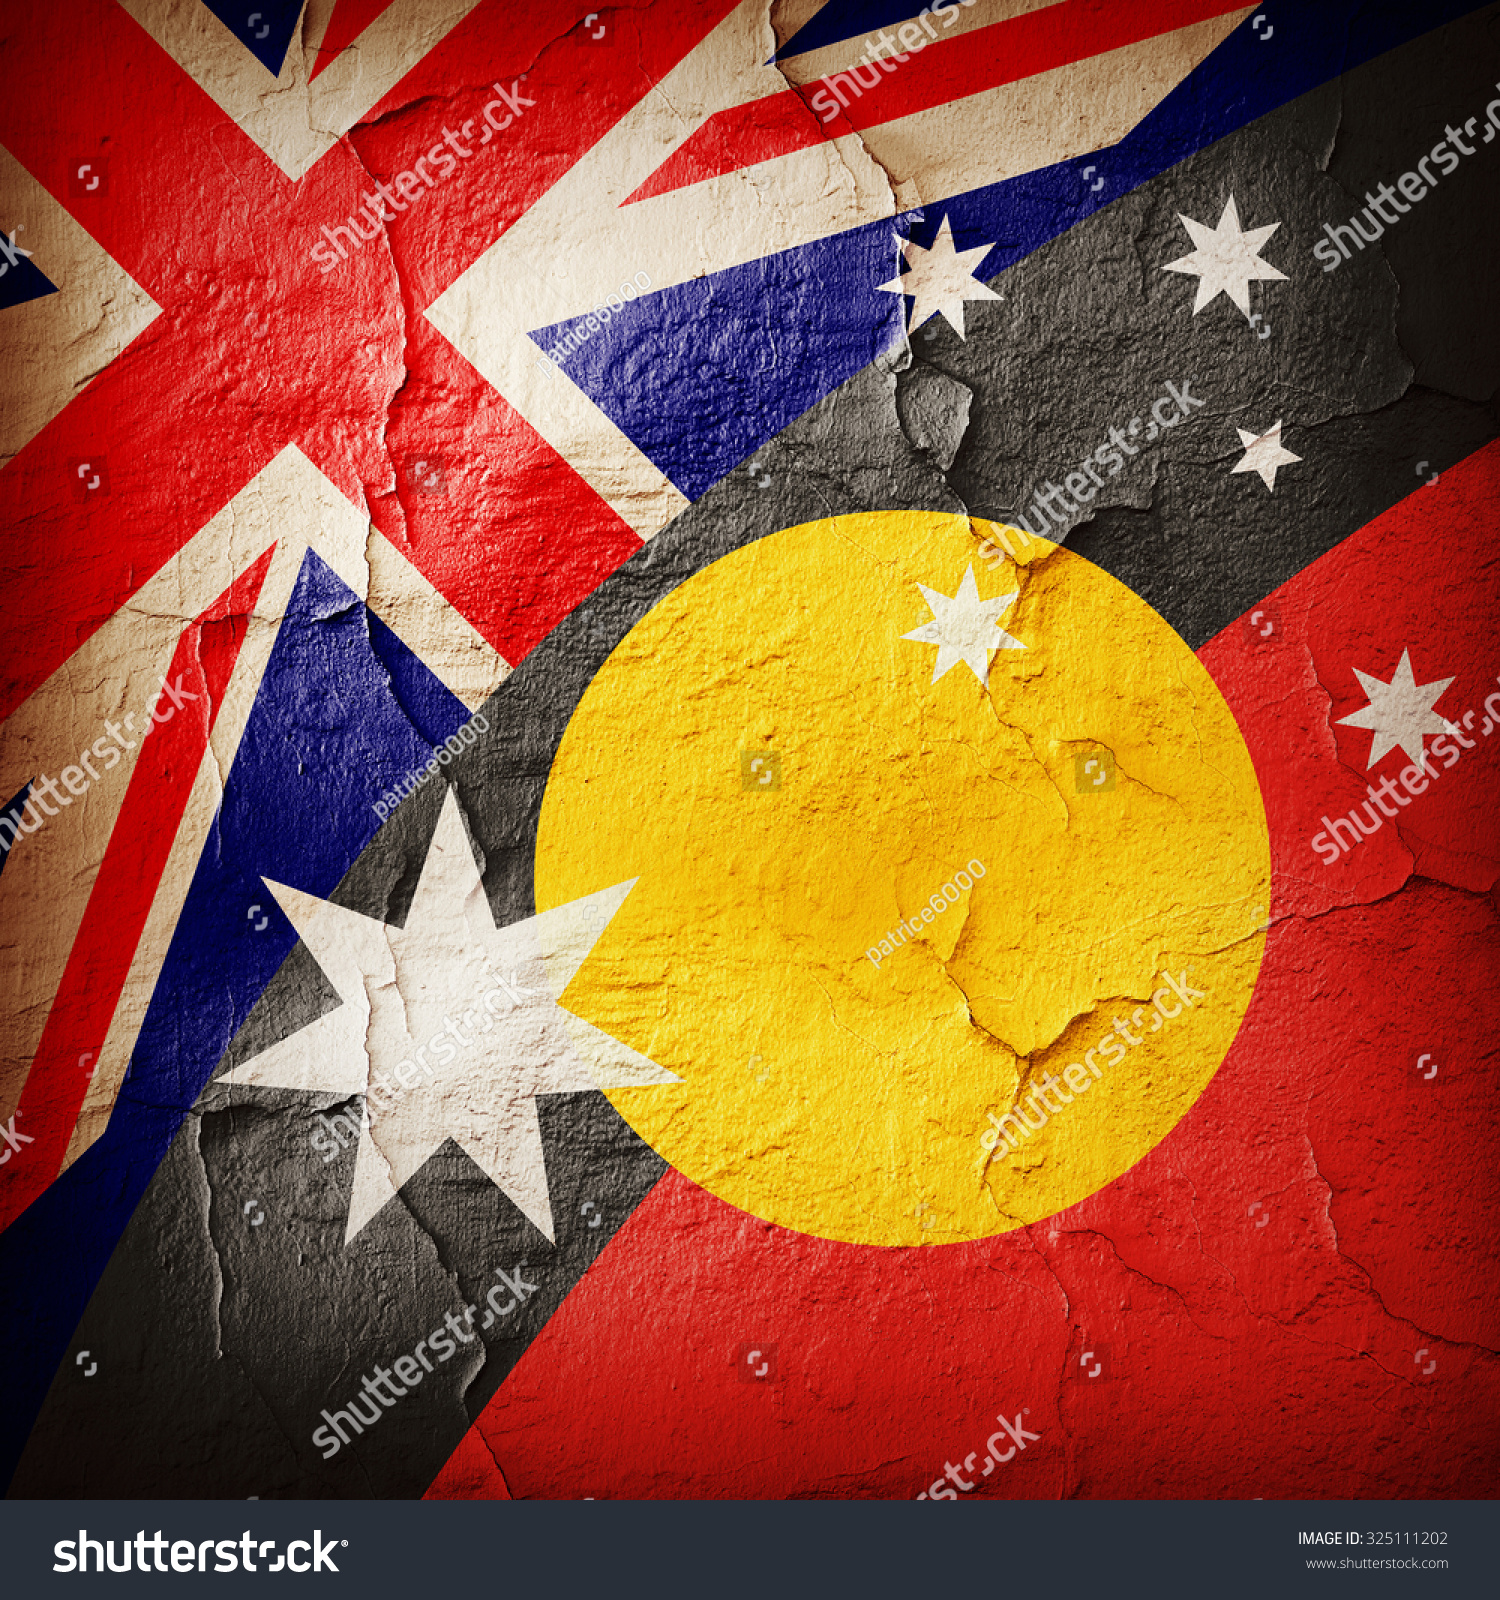 Australia Aboriginal Flags Wall Background Stockillustration ...